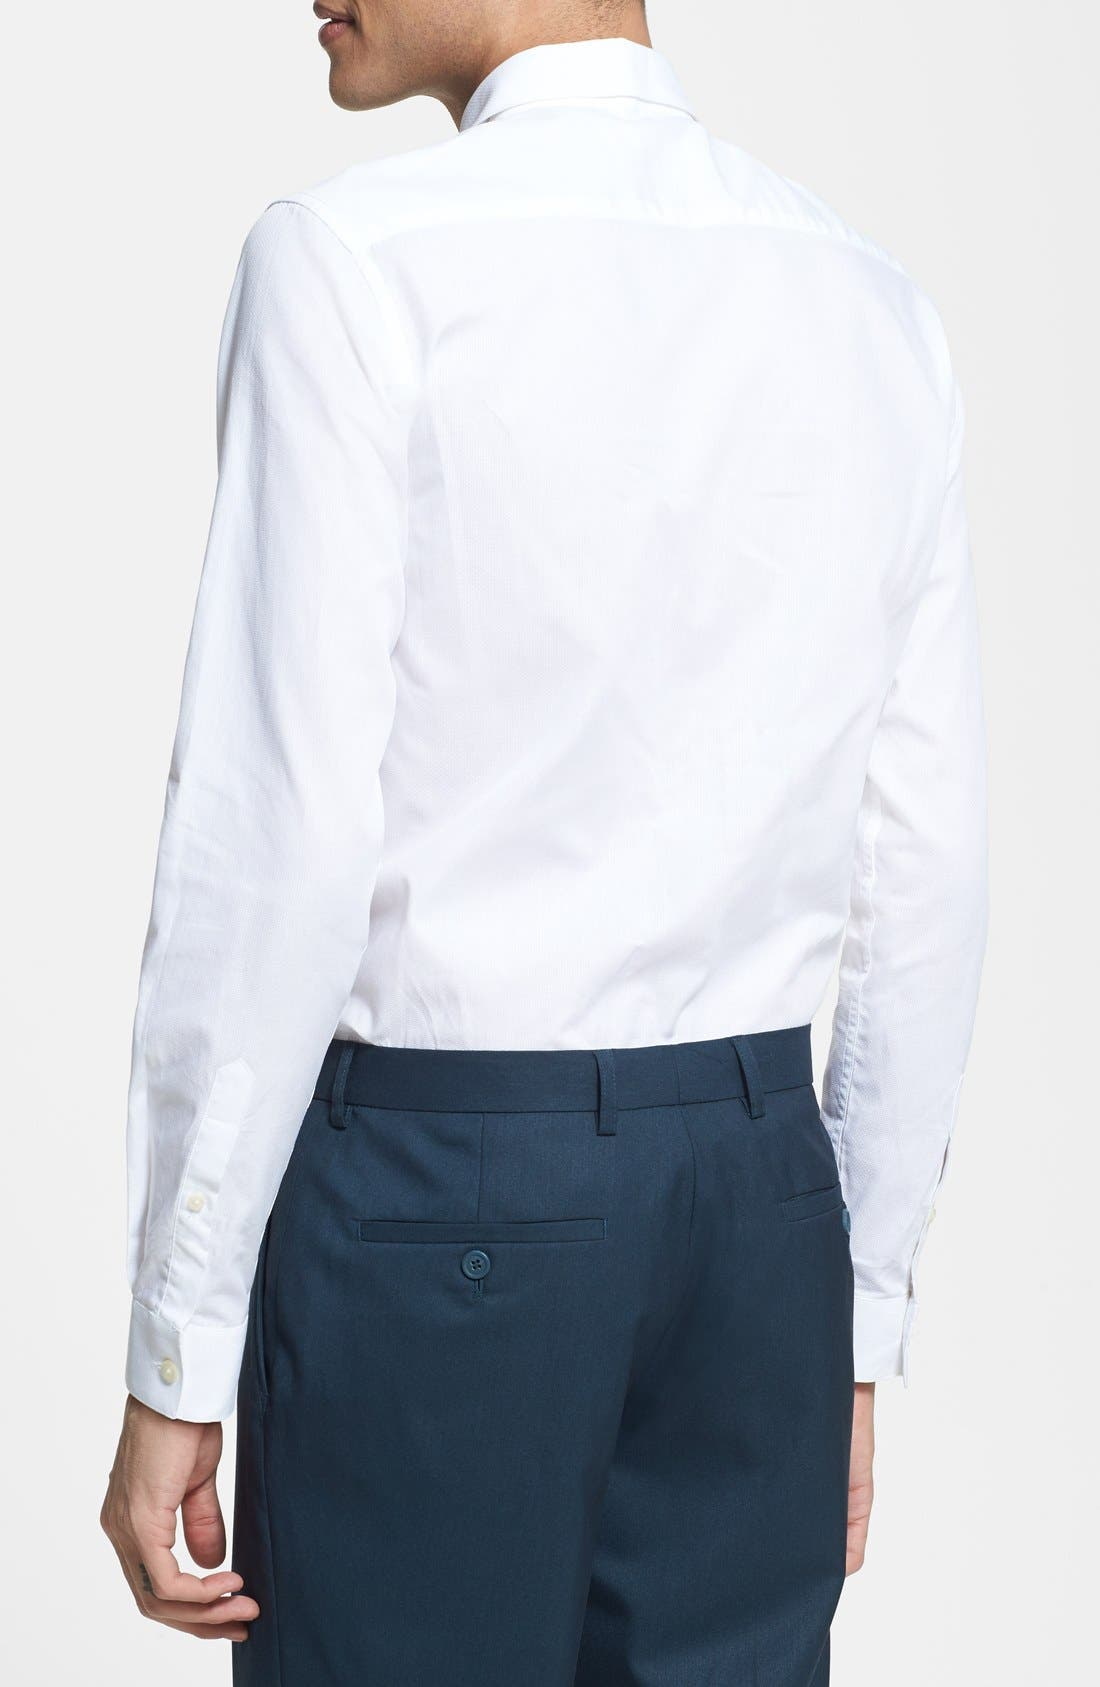 Alternate Image 3  - Topman Slim Fit Textured Cotton Dress Shirt